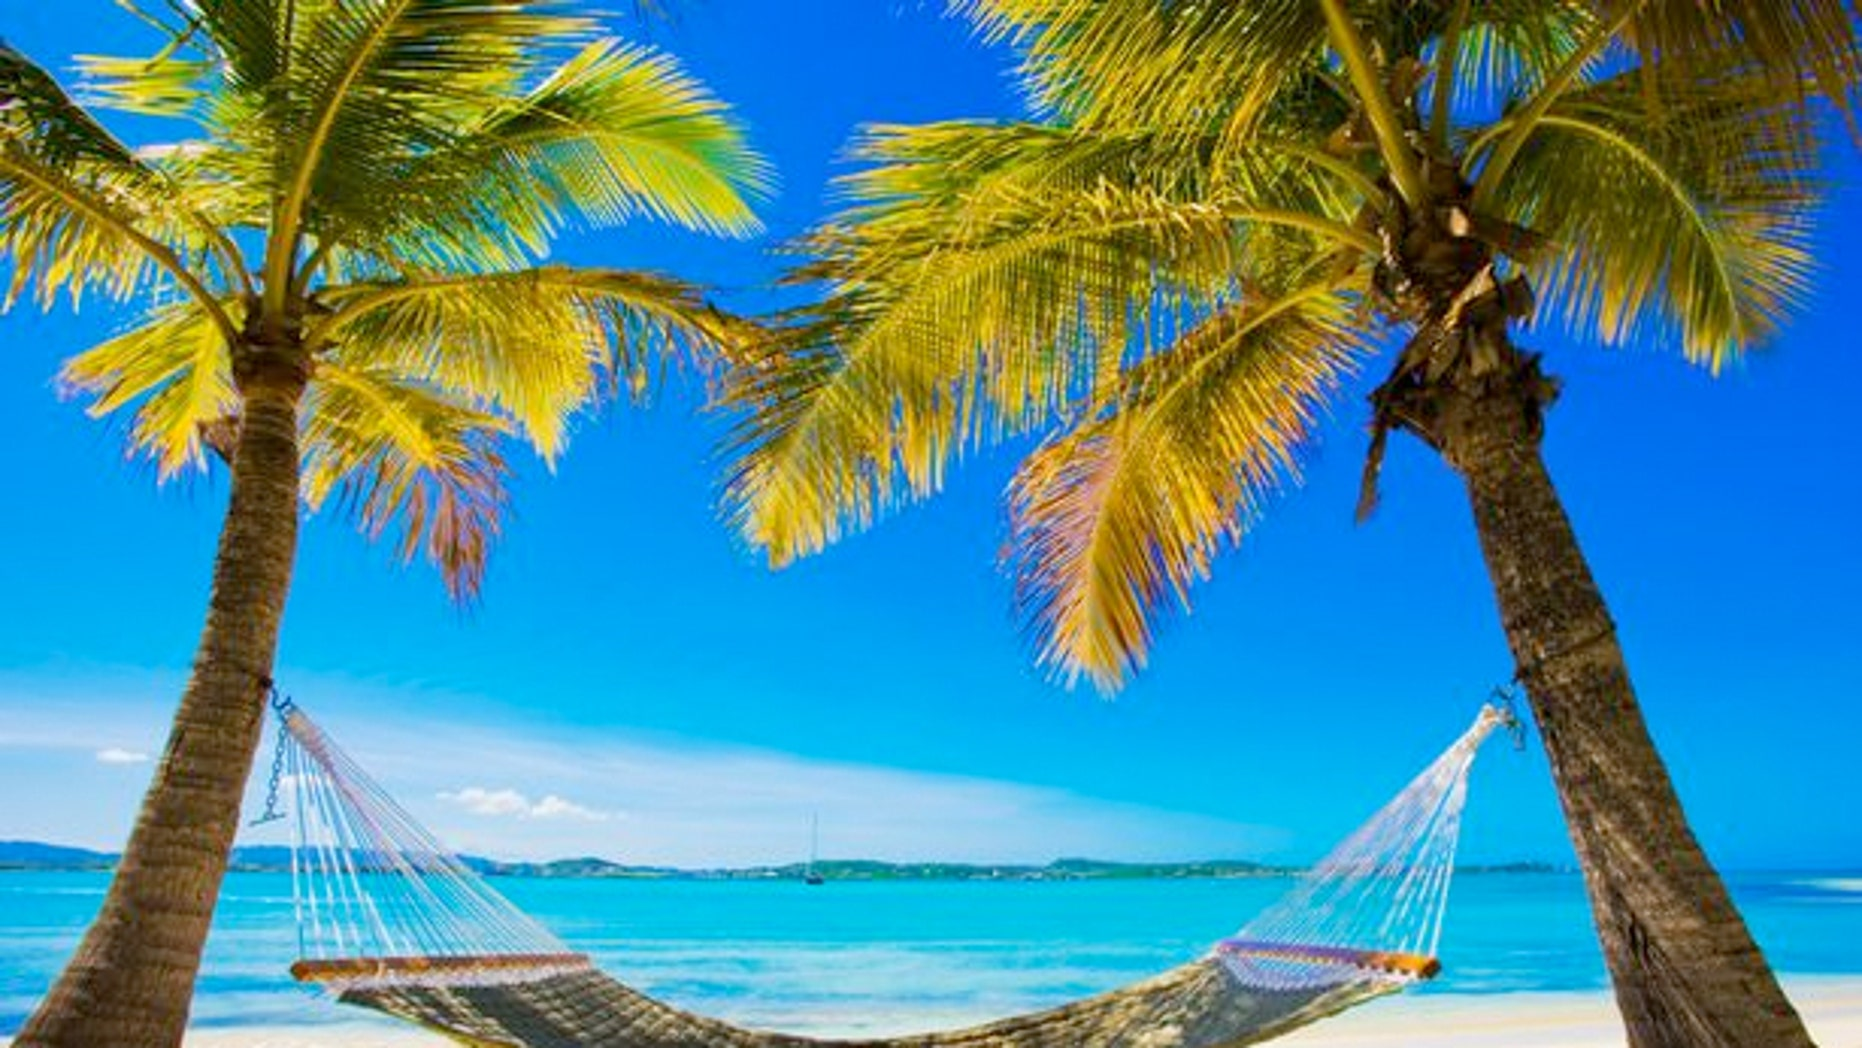 Tickets to the Caribbean tends to be pricey this time of year but Florida remains a bargain.